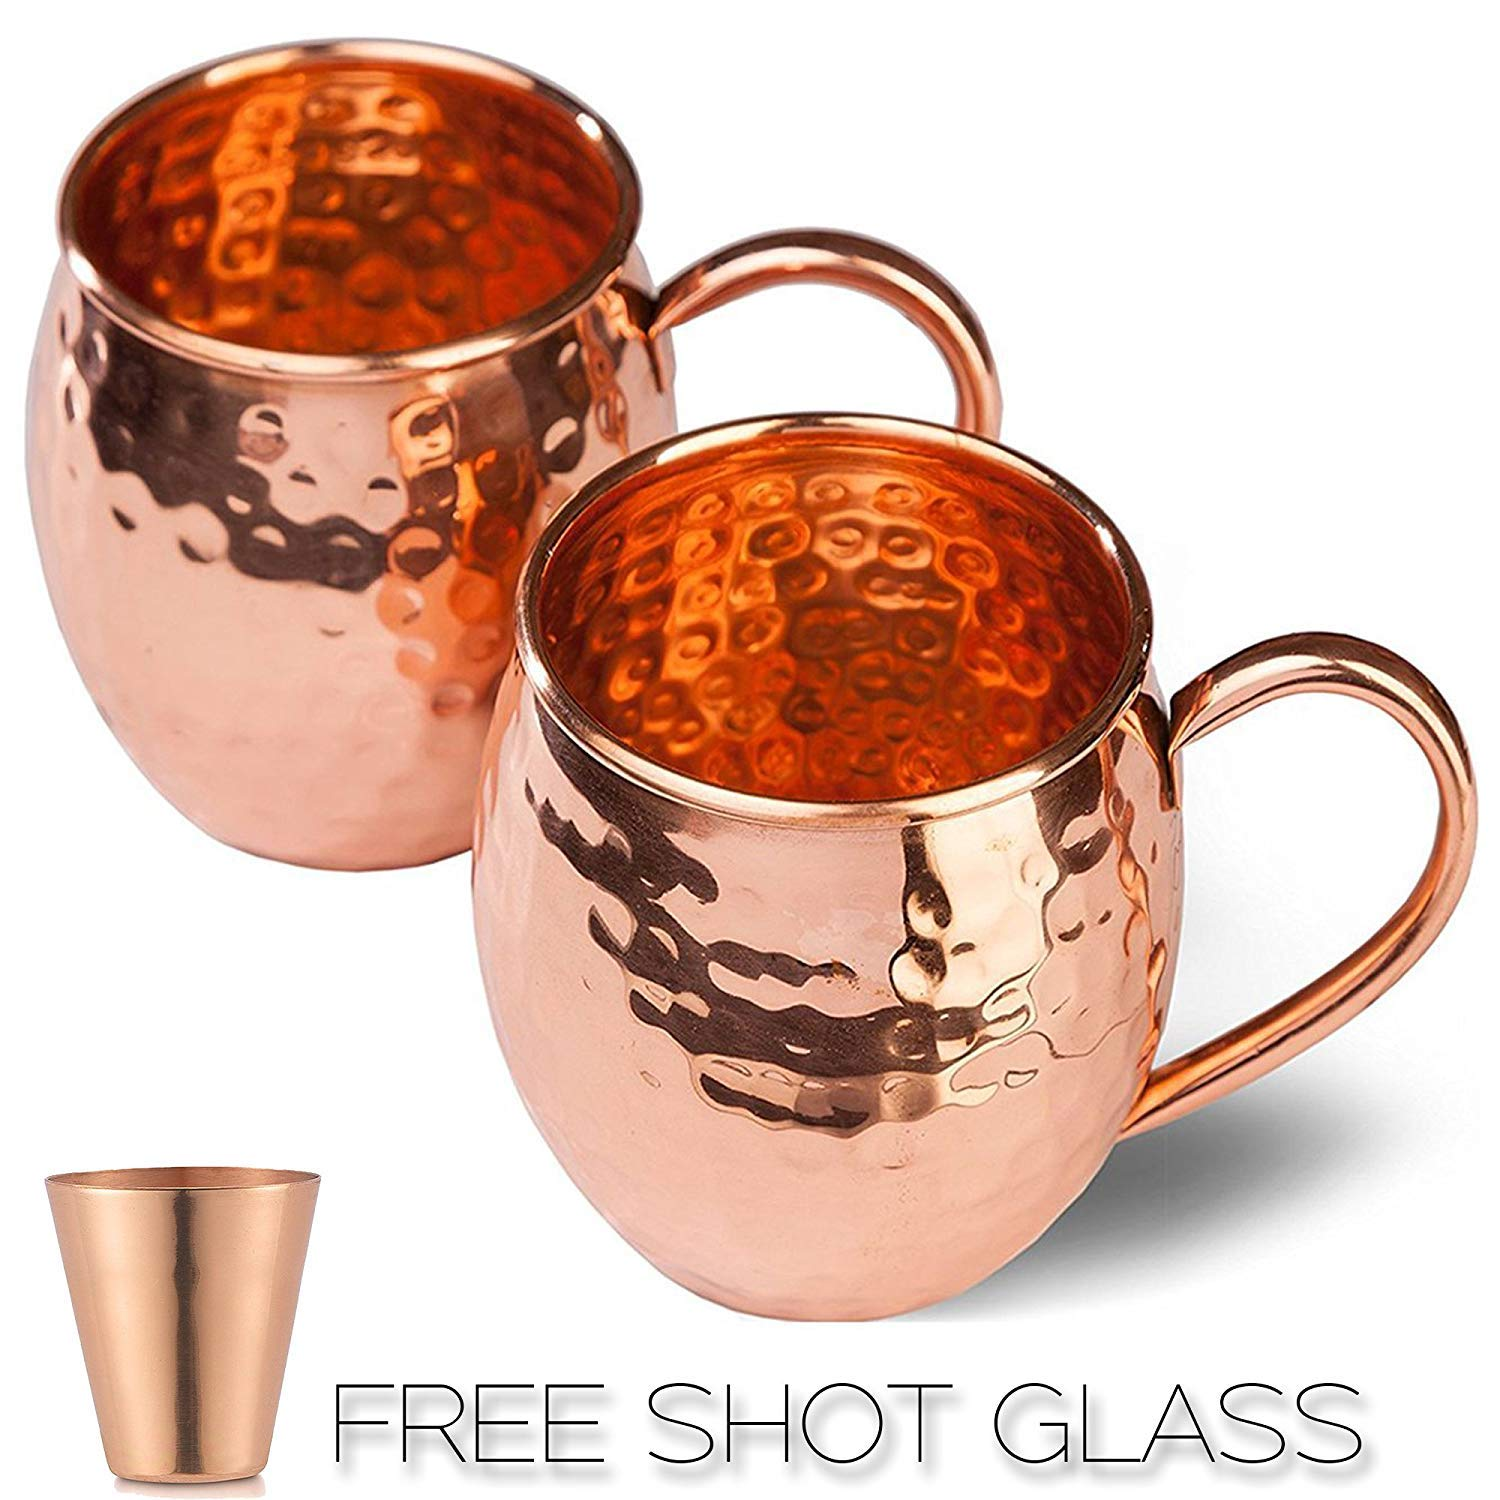 Moscow Mule Copper Mugs GiftBox - 100% Pure Copper Hand Crafted Hand Hammered Copper Mugs Cups for Moscow Mule Cocktail Drink - Set of 2 Copper Mugs with SHOT GLASS